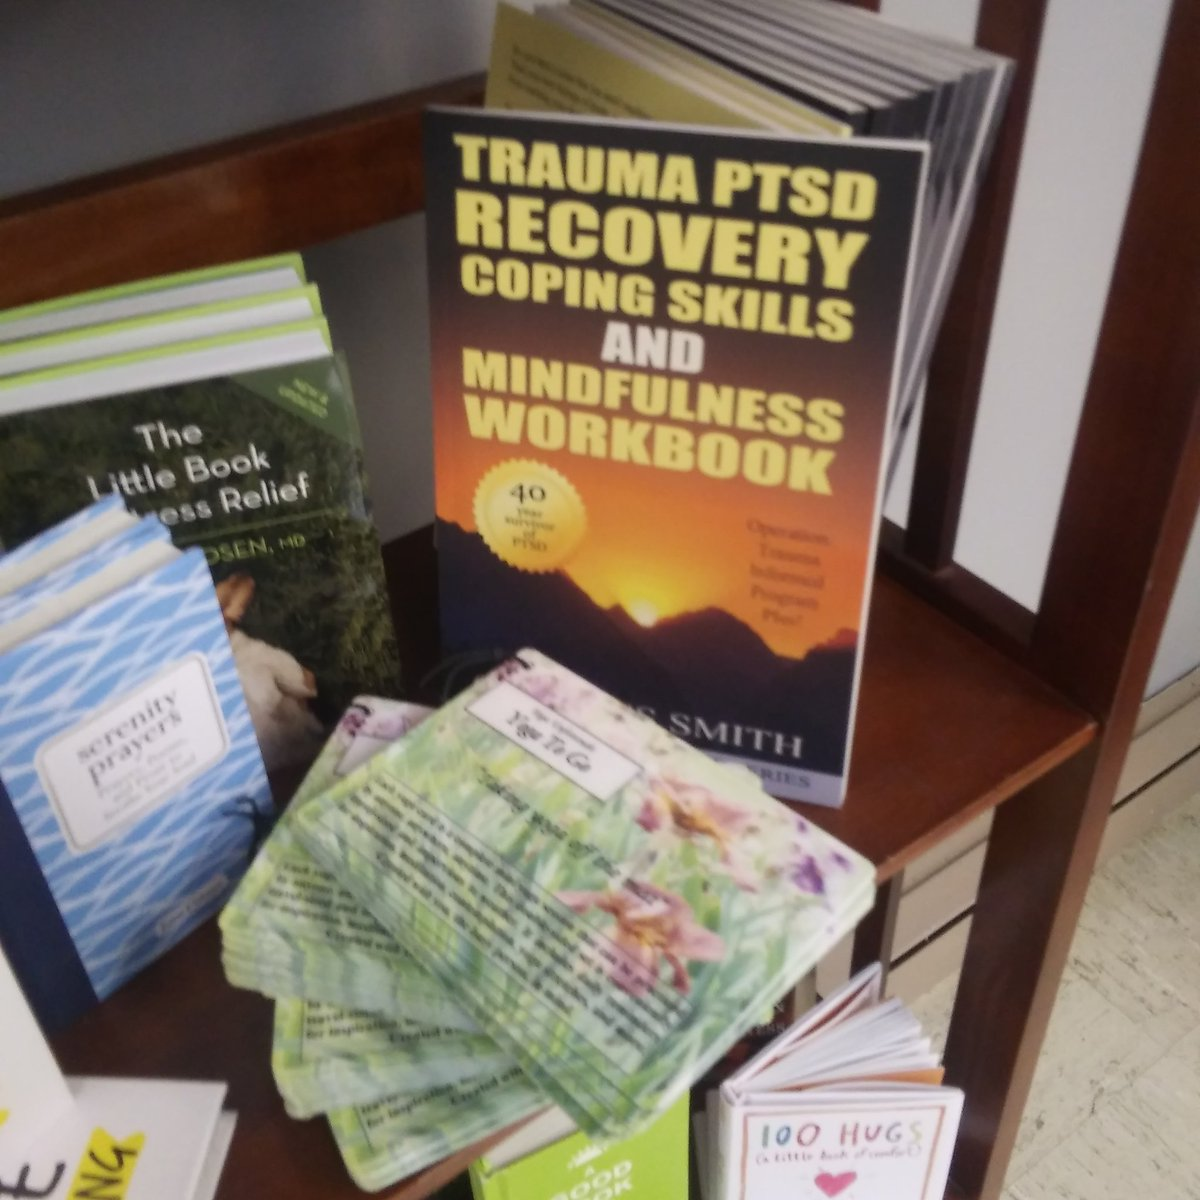 Many of us, soldiers and civilians suffer from PTSD. Learn how to cope with the effects and triggers to better your lives!   https://www.amazon.com/Trauma-Recovery-Coping-Mindfulness-Workbook-ebook/dp/B07W8X2TN3…  @soulsticegifts @bnmillbury @taprootbookstore  #ptsd #ptsdawareness #ptsdrecovery #ptsdsurvivor #ptsdsucks #traumarecovery #trauma